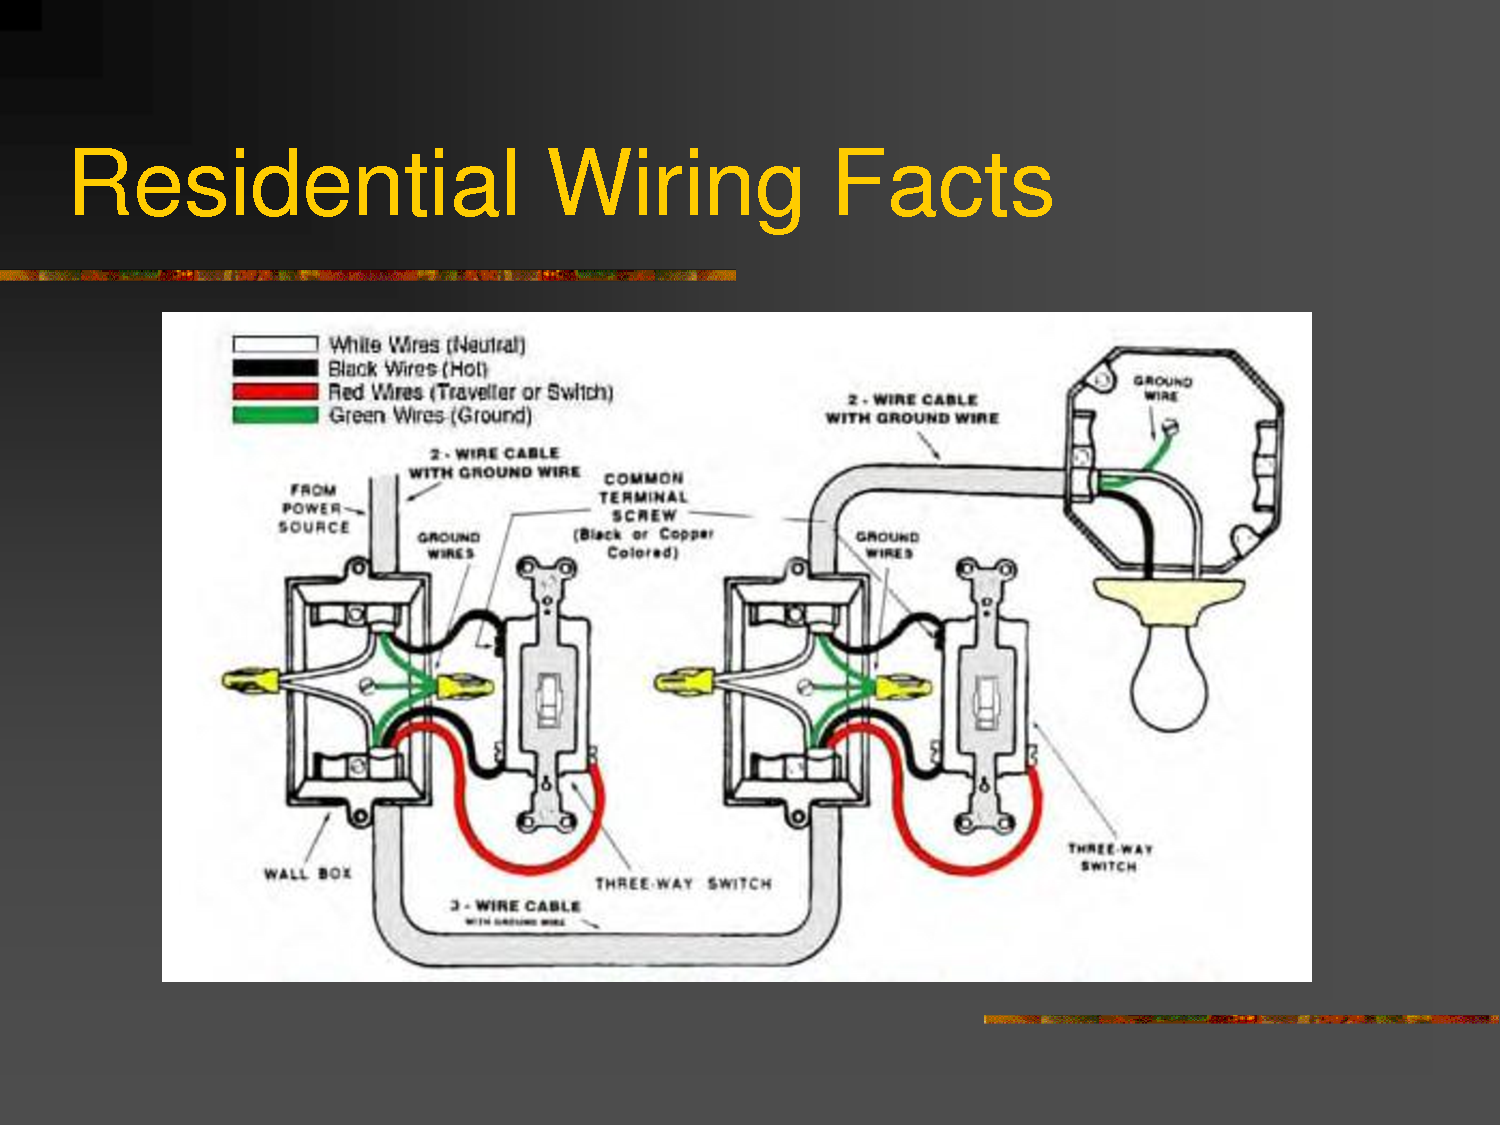 85f6d7068dddf27aa5737fc68962f04e 4 best images of residential wiring diagrams house electrical house wiring diagrams at soozxer.org